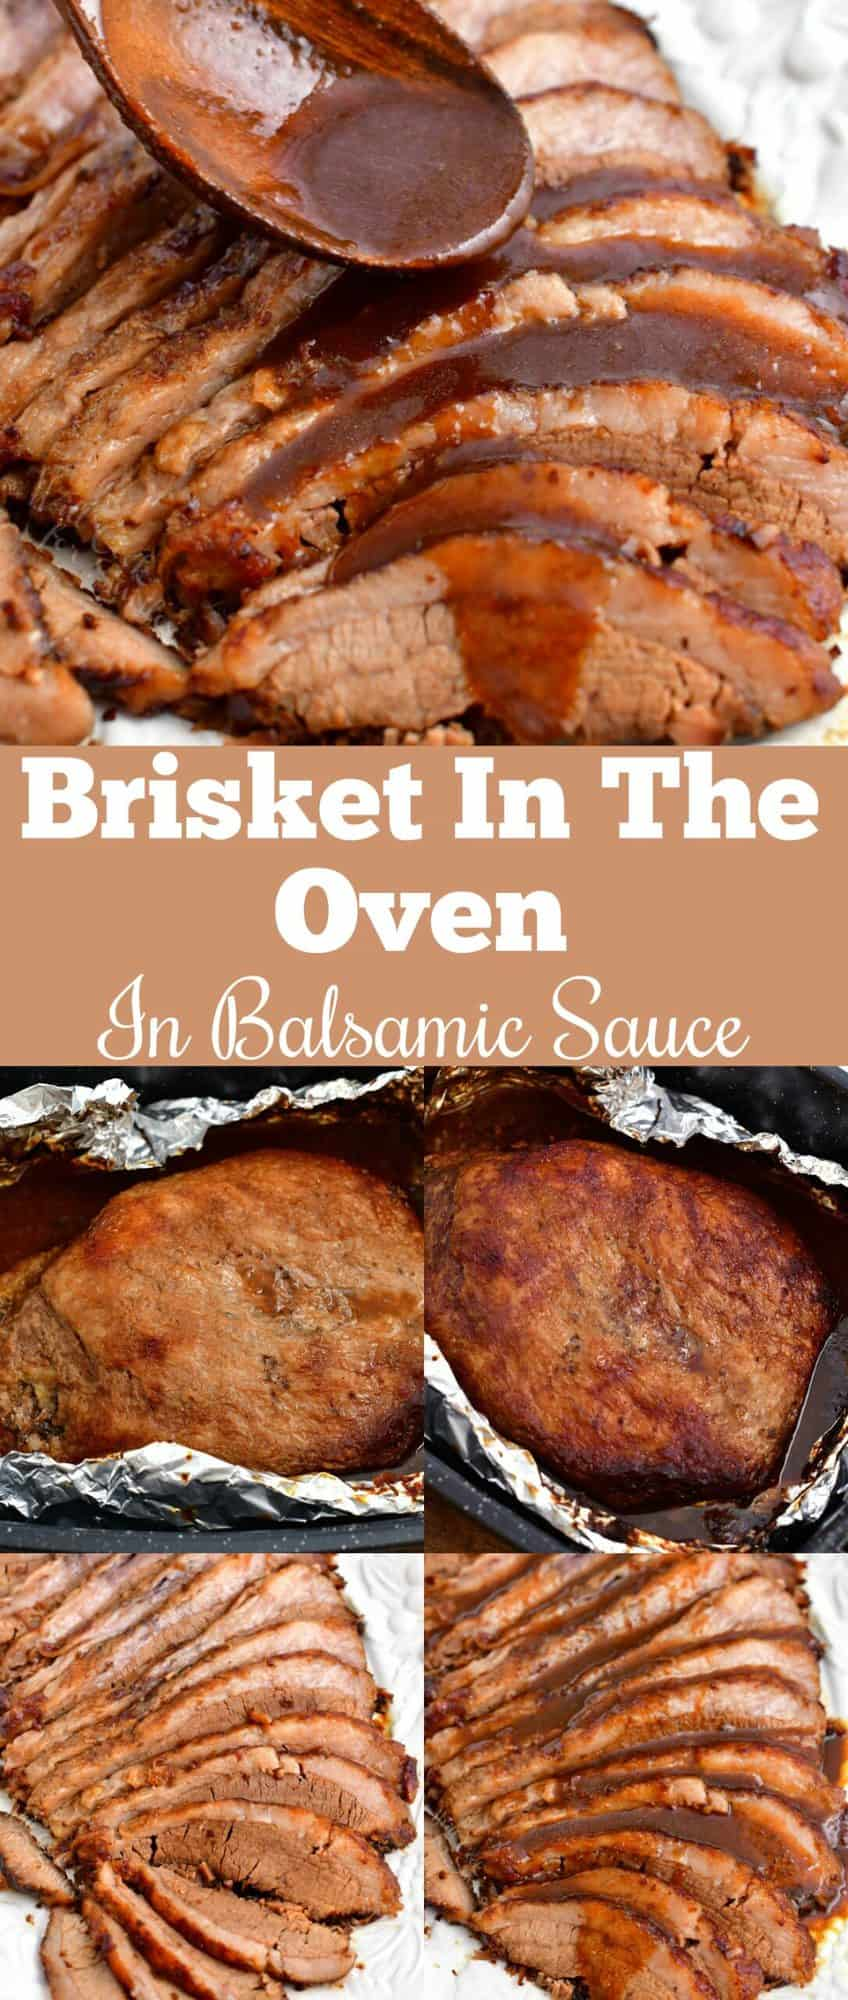 Titled photo for Pinterest: Brisket in the Oven with Balsamic Sauce